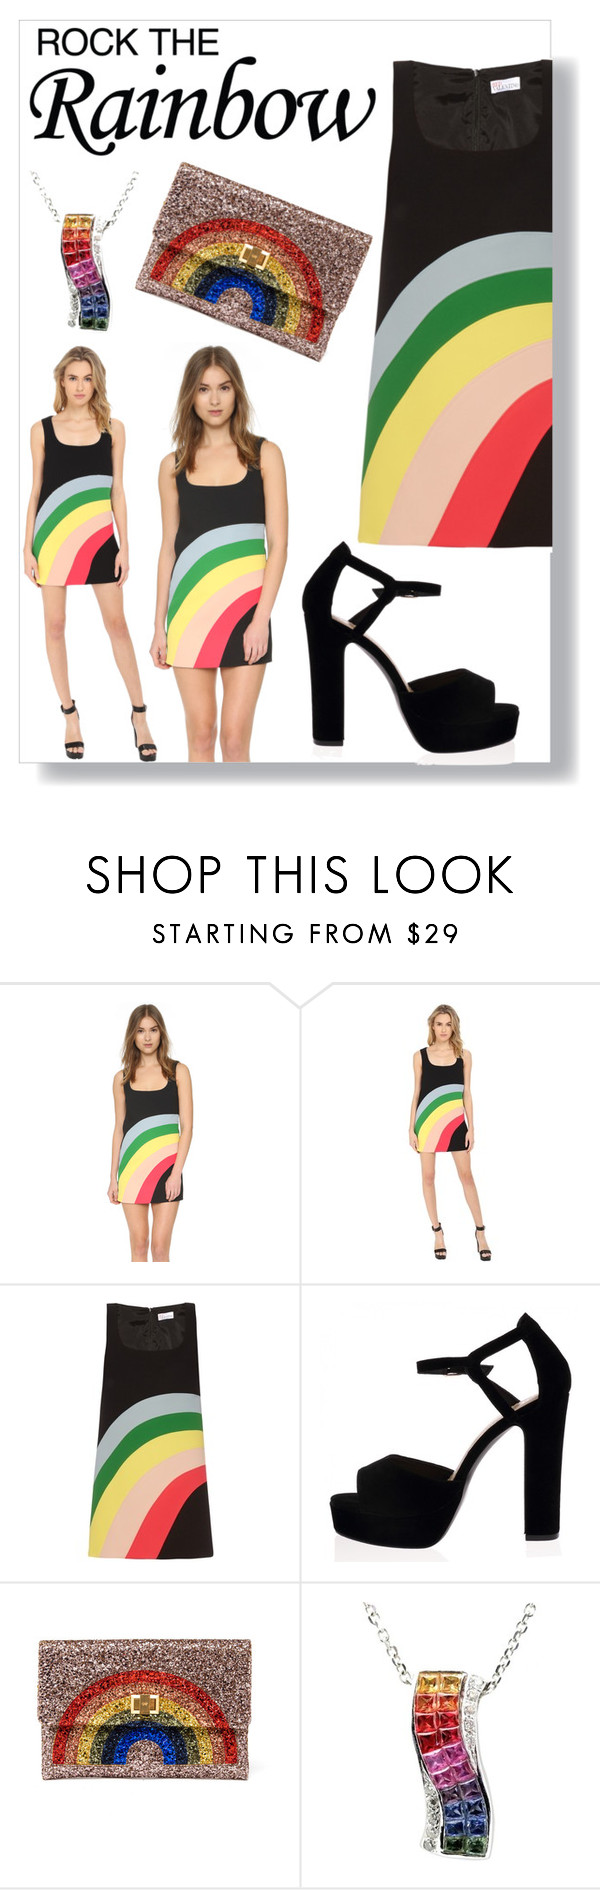 """""""Rocktherainbow"""" by snowboarder17 ❤ liked on Polyvore featuring moda, RED Valentino, Anya Hindmarch, women's clothing, women, female, woman, misses, juniors e RockTheRainbow"""